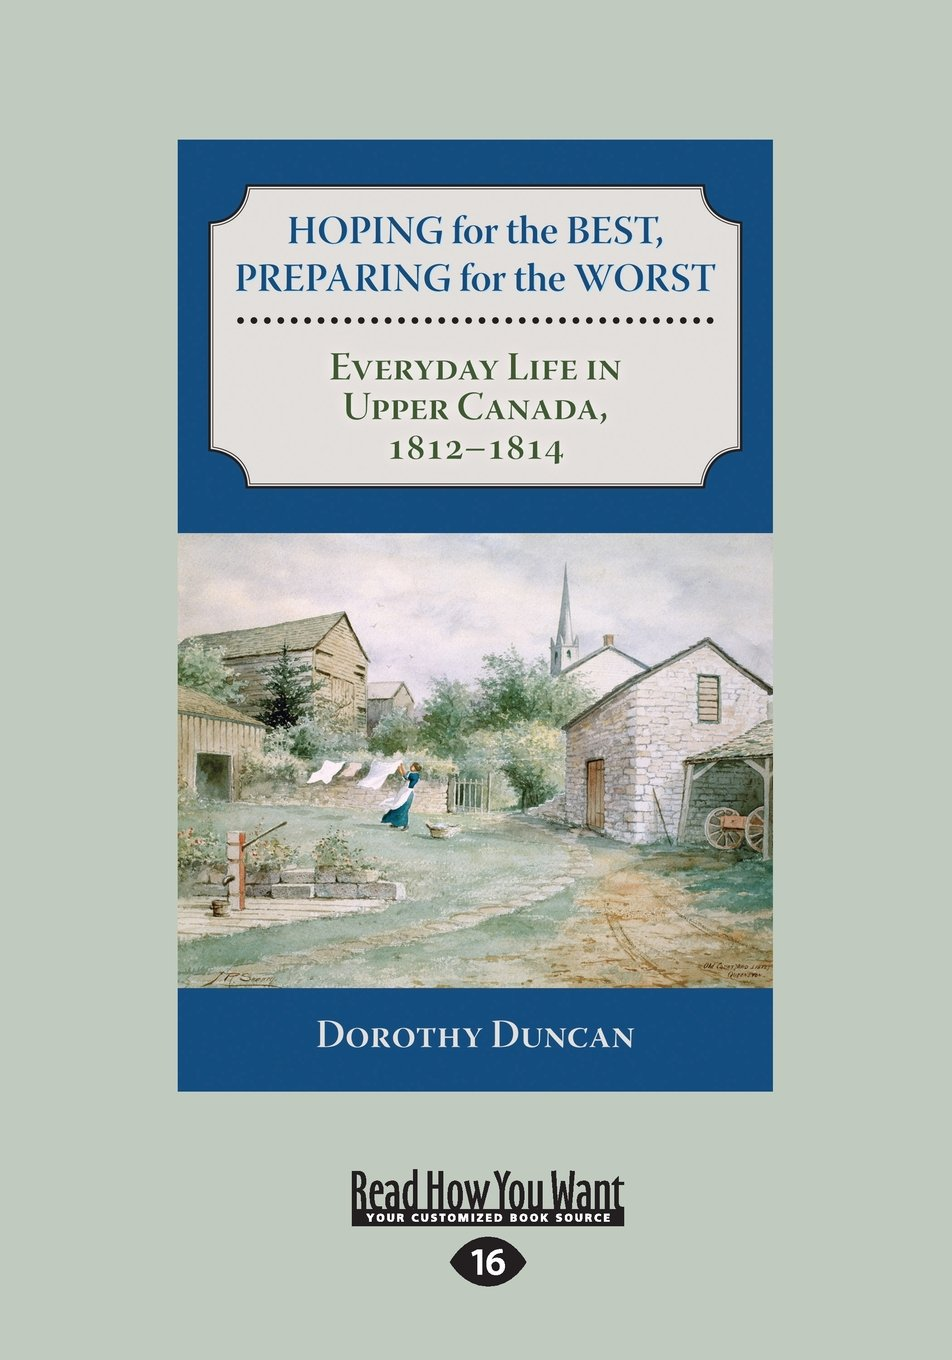 Hoping for the Best, Preparing for the Worst: Everyday Life in Upper Canada, 1812-1814 pdf